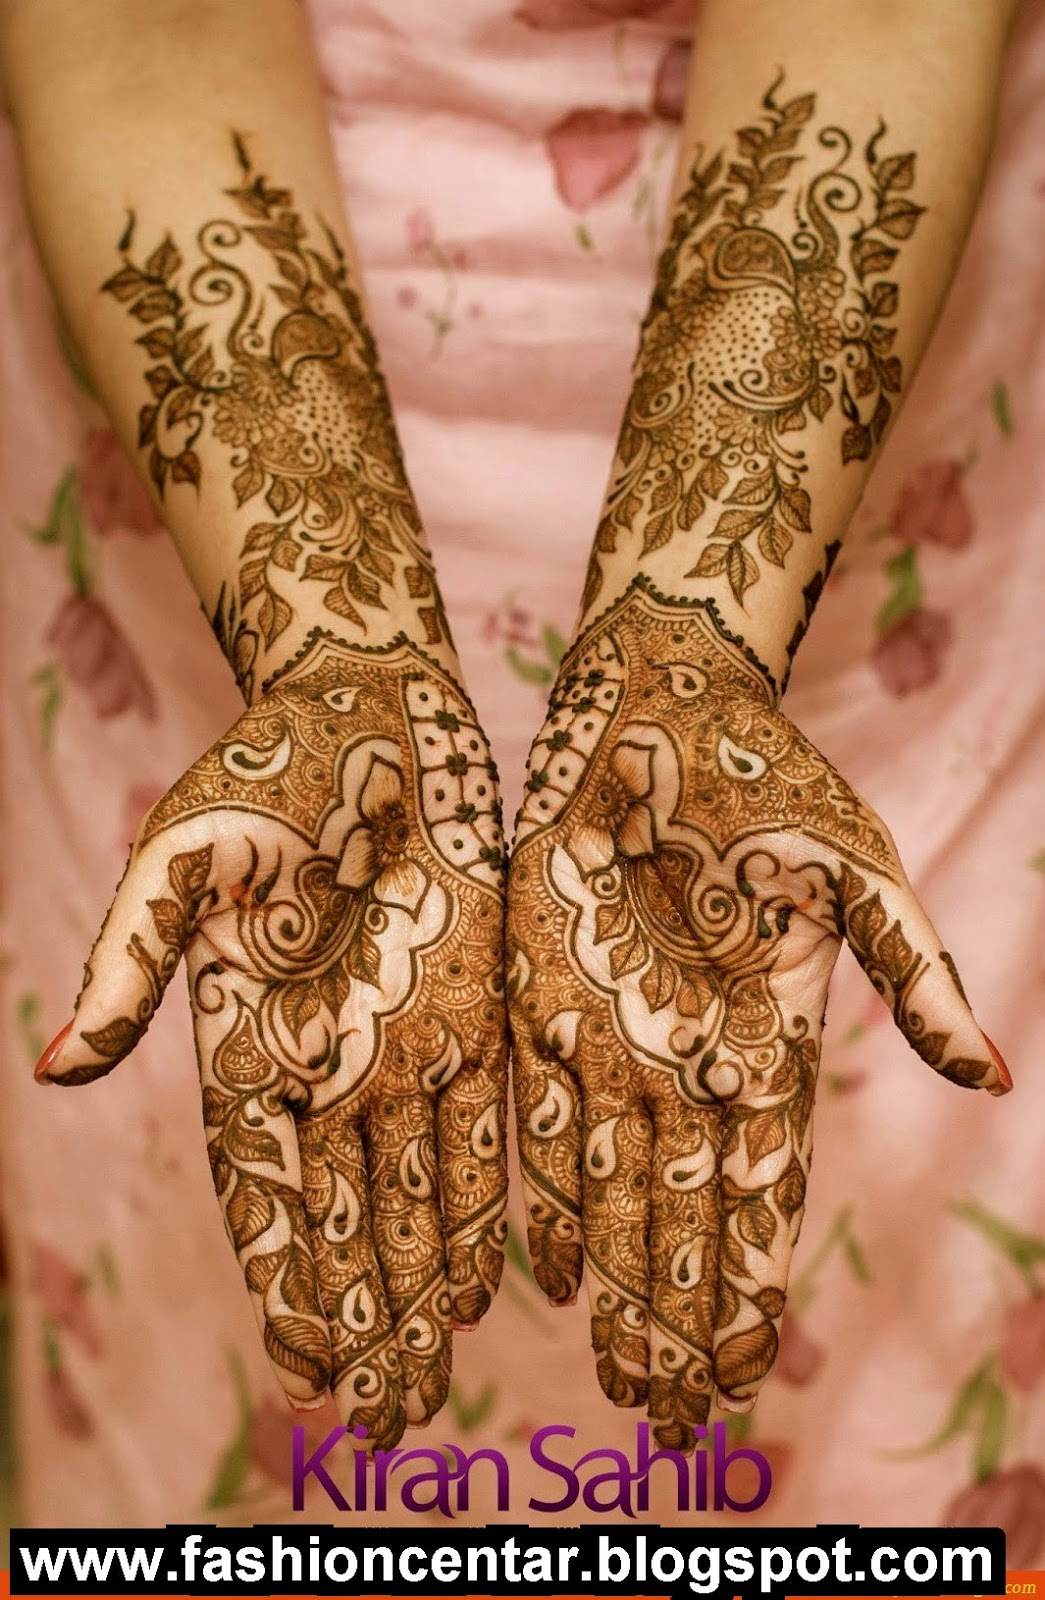 Eid Mehndi Designs  wwwfashioncentarblogspotcom. 1045 x 1600.Hairstyles For Girls On Eid